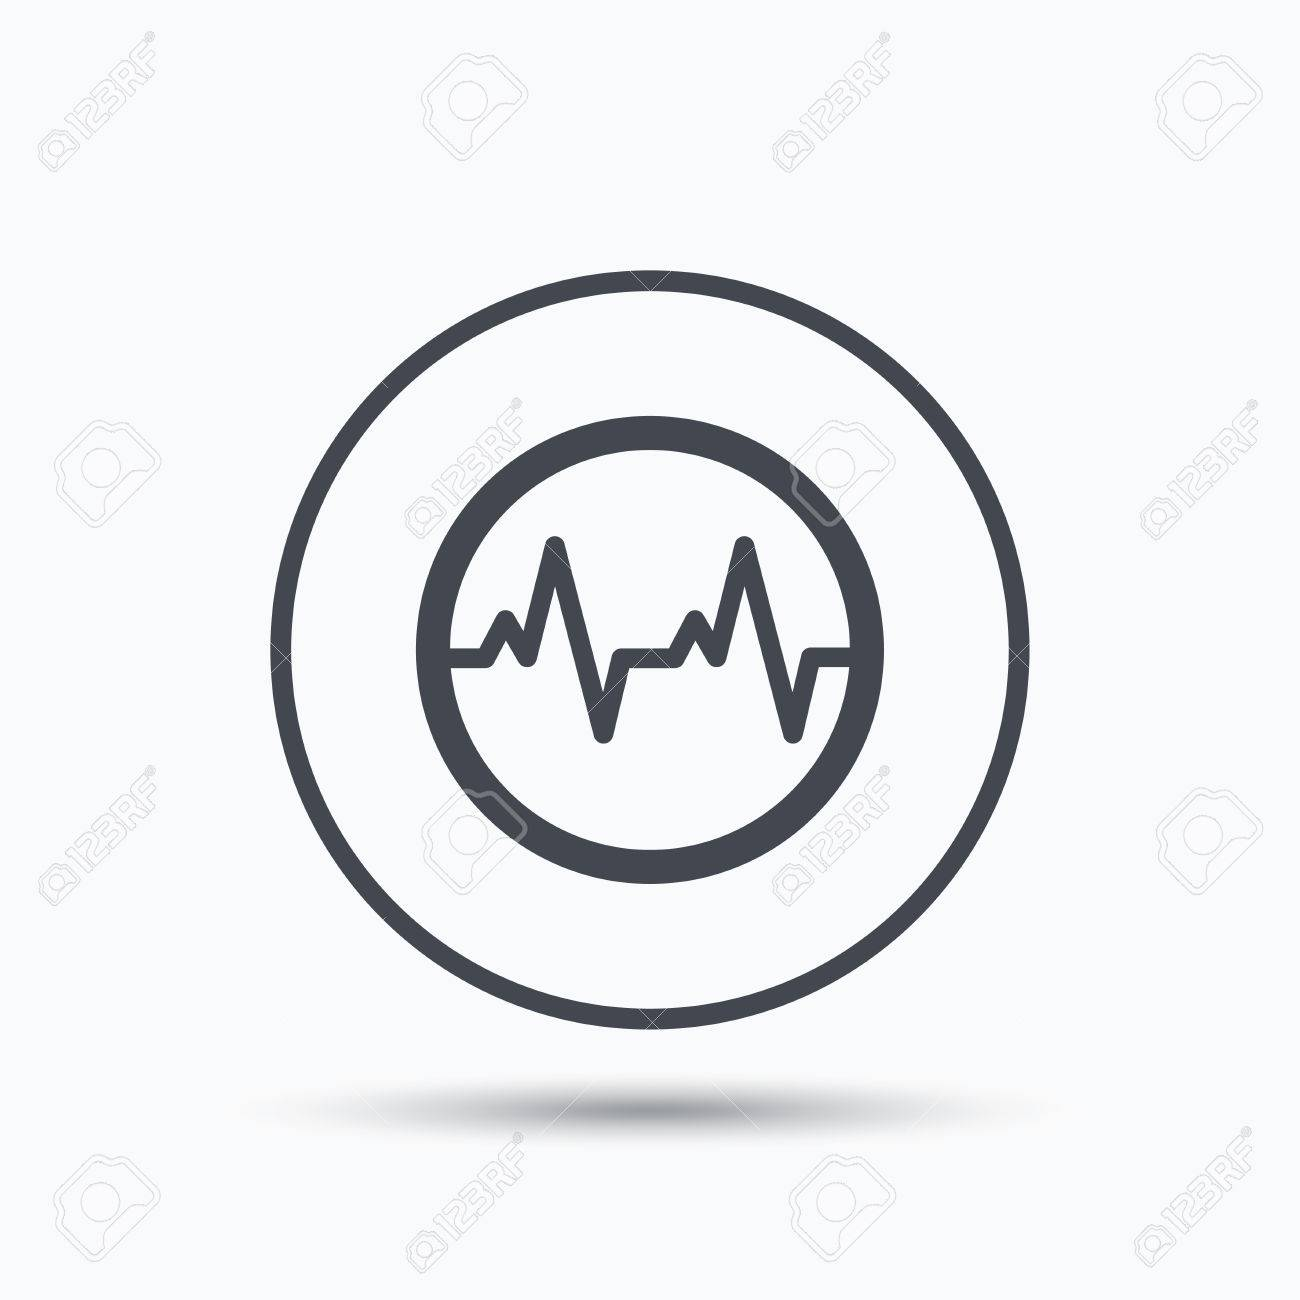 Heartbeat Icon Cardiology Symbol Medical Pressure Sign Circle